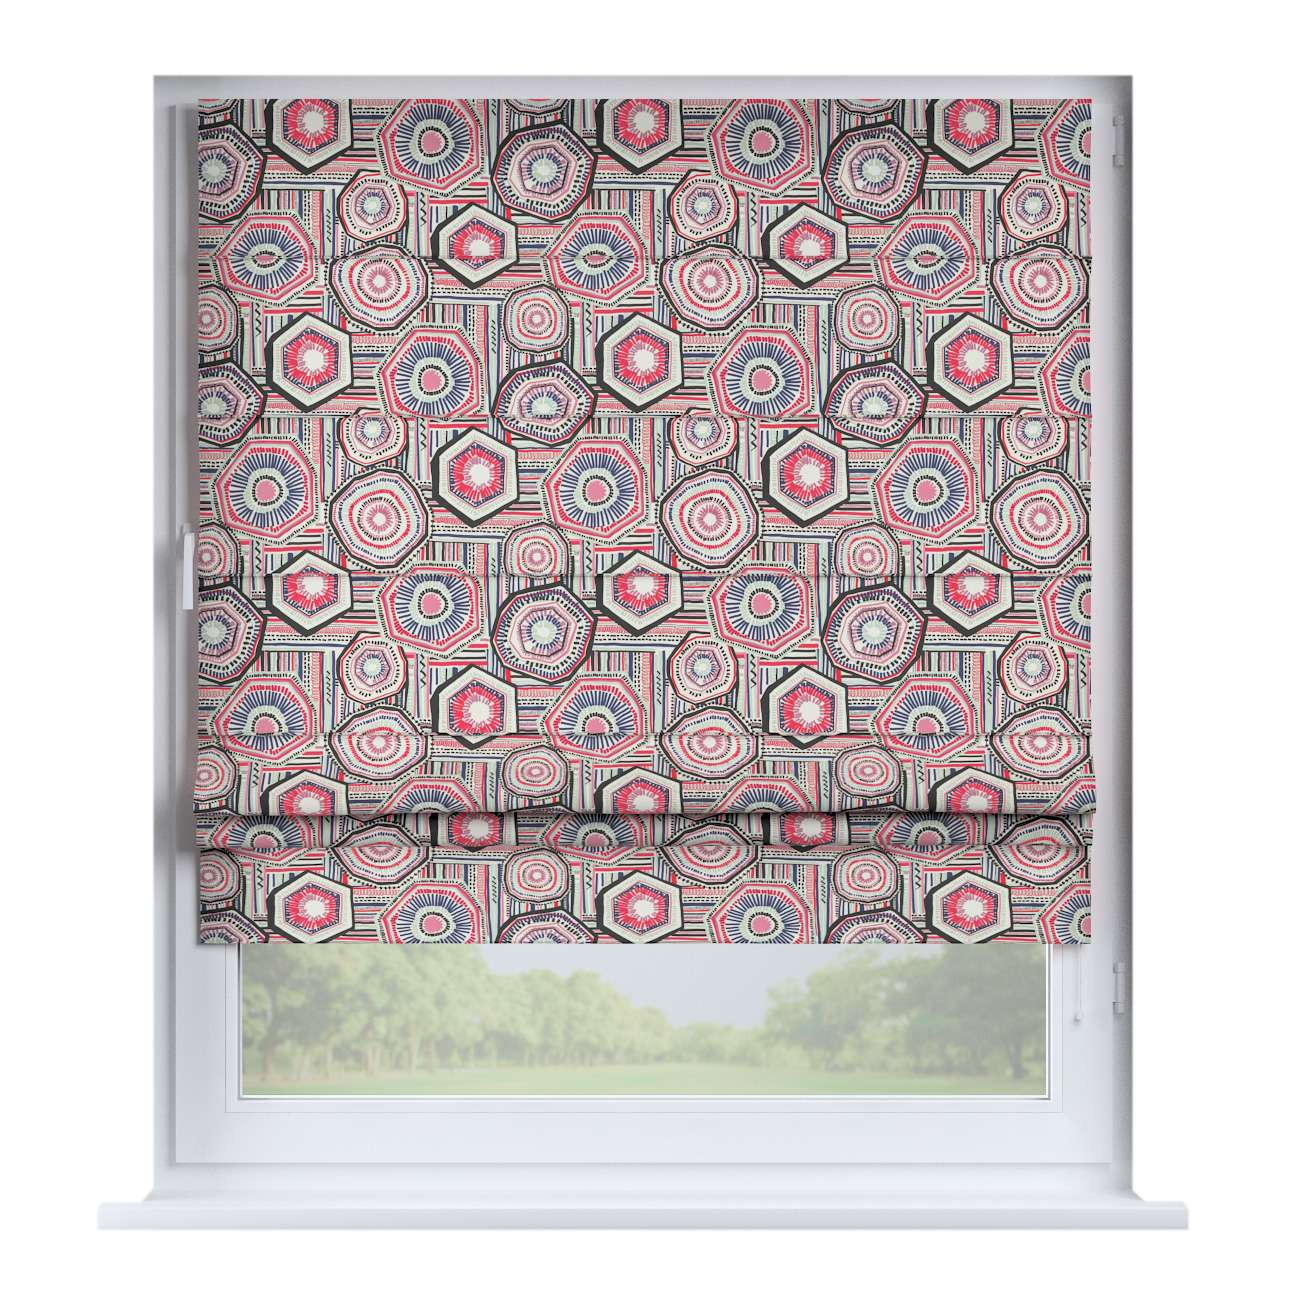 Padva roman blind  80 × 170 cm (31.5 × 67 inch) in collection New Art, fabric: 141-54